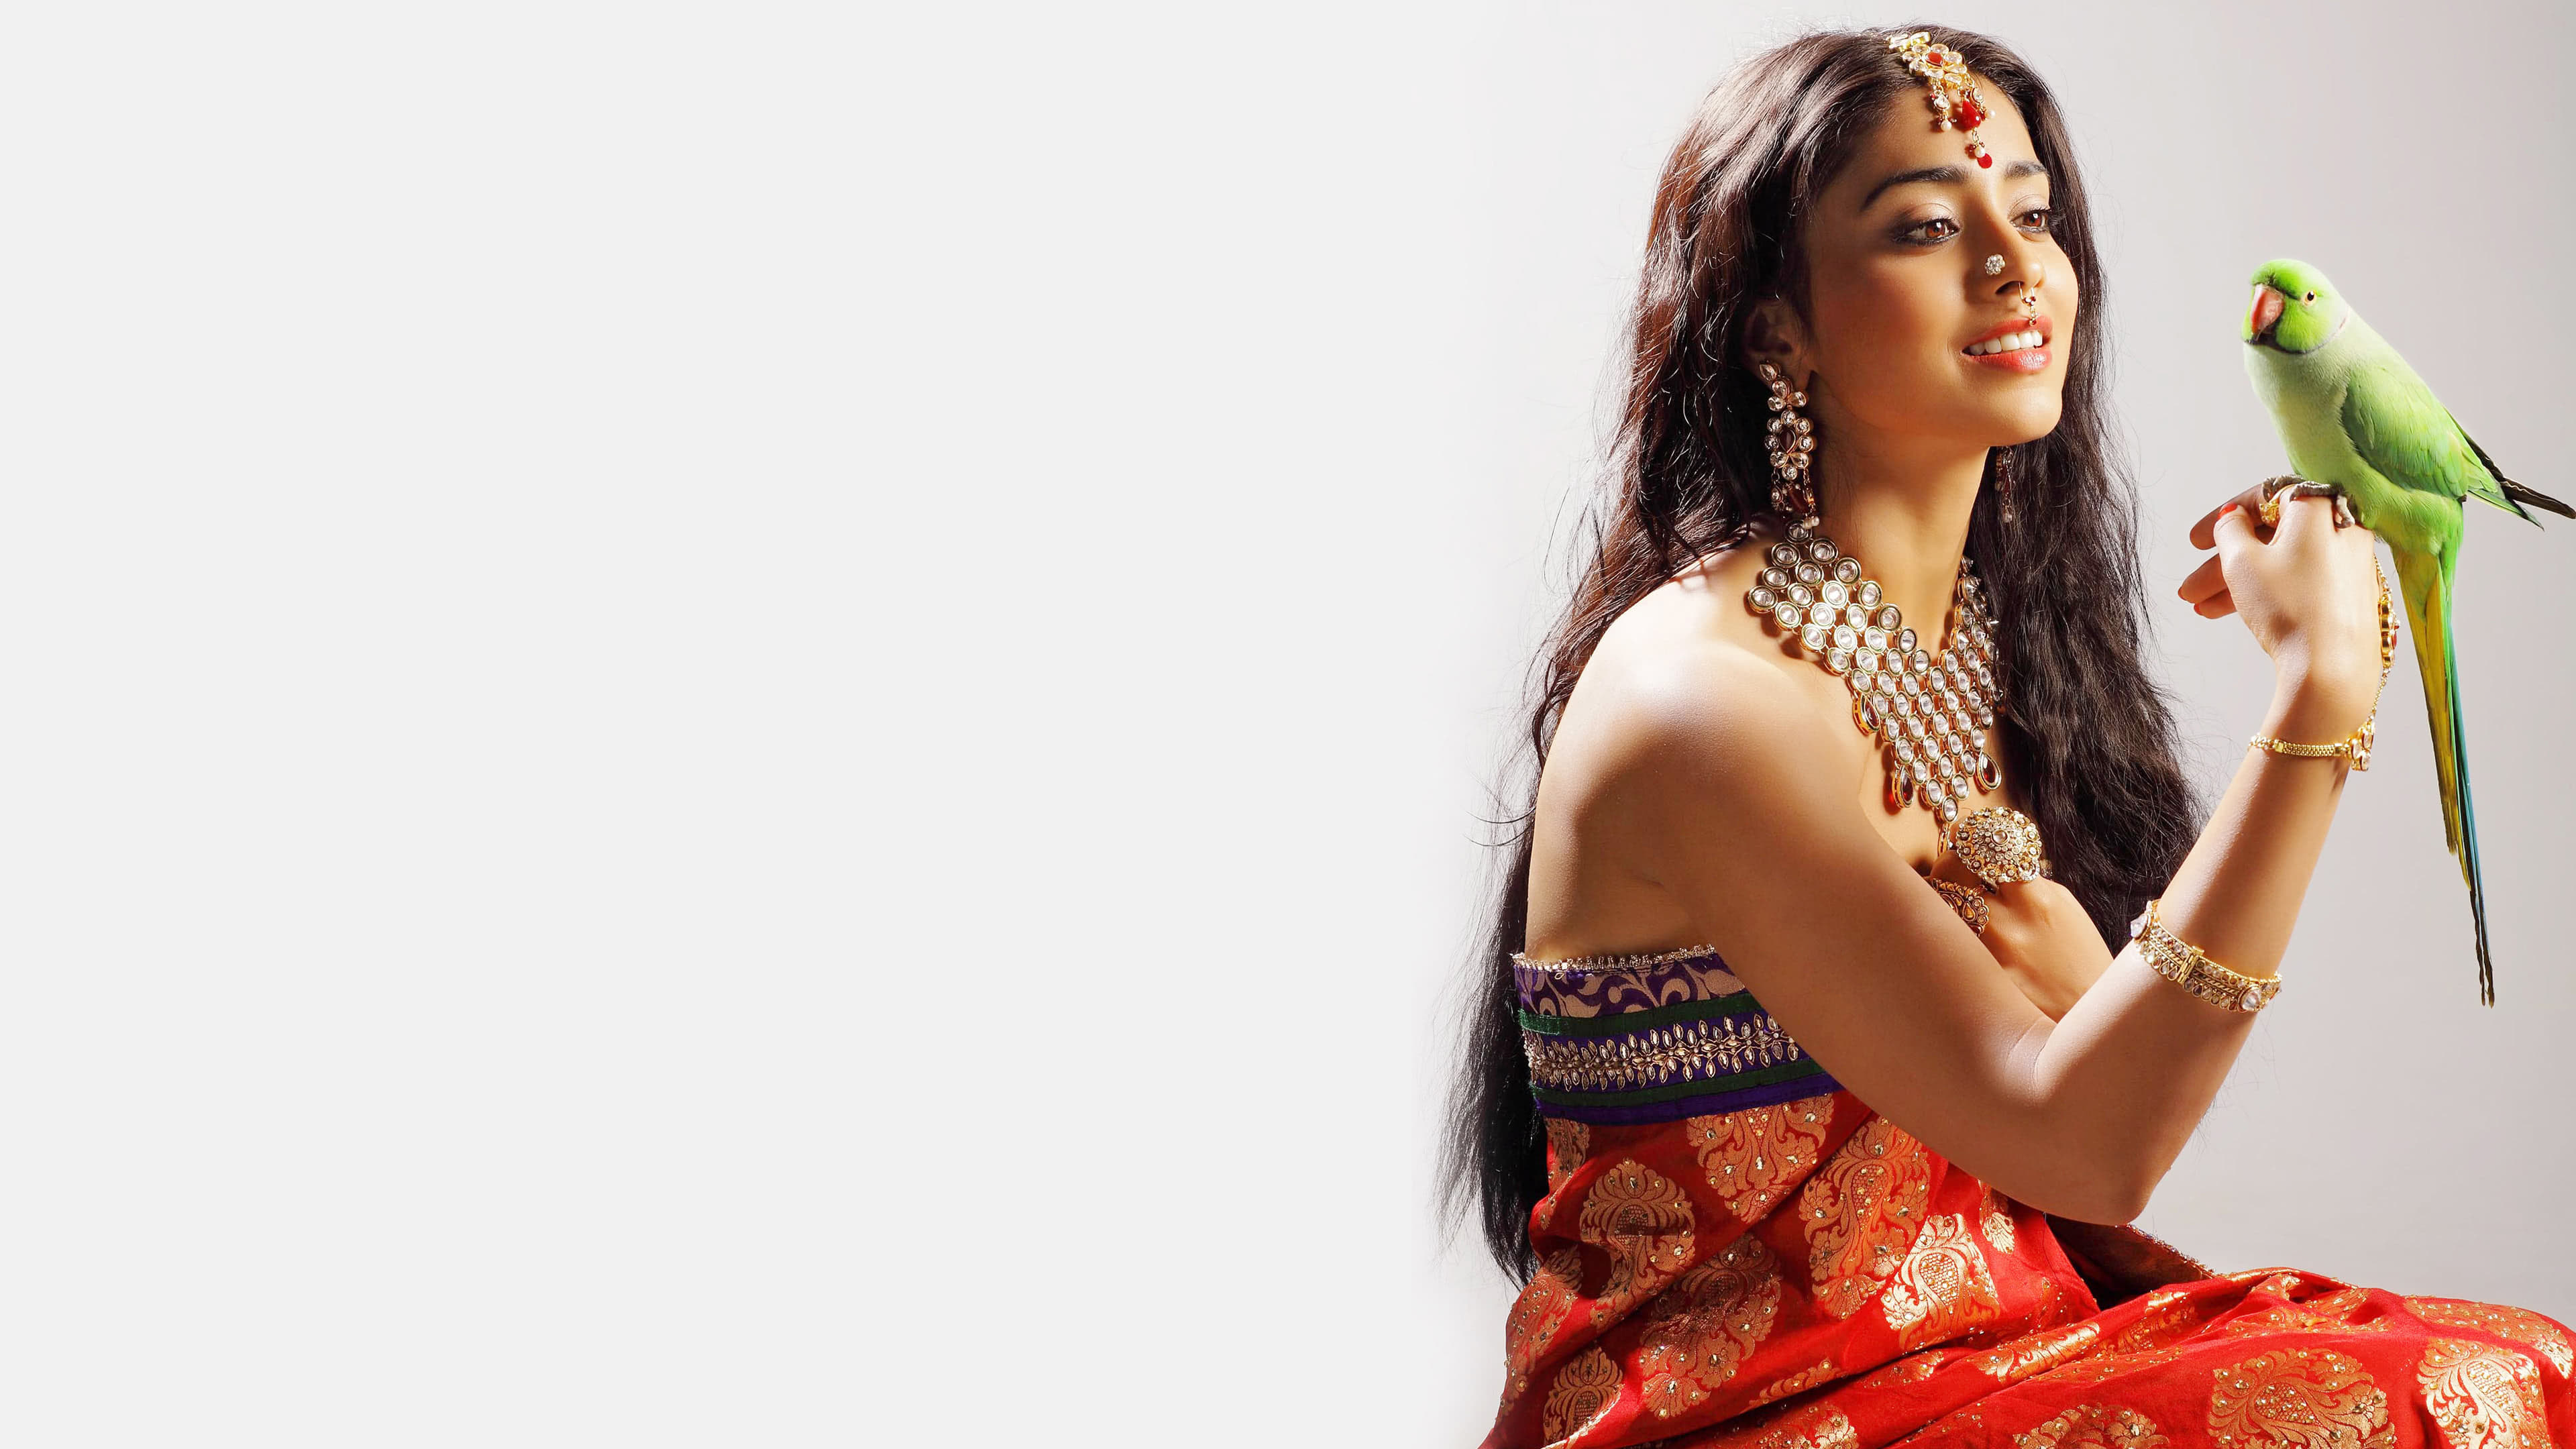 shriya saran traditional saree photoshoot uhd 4k wallpaper